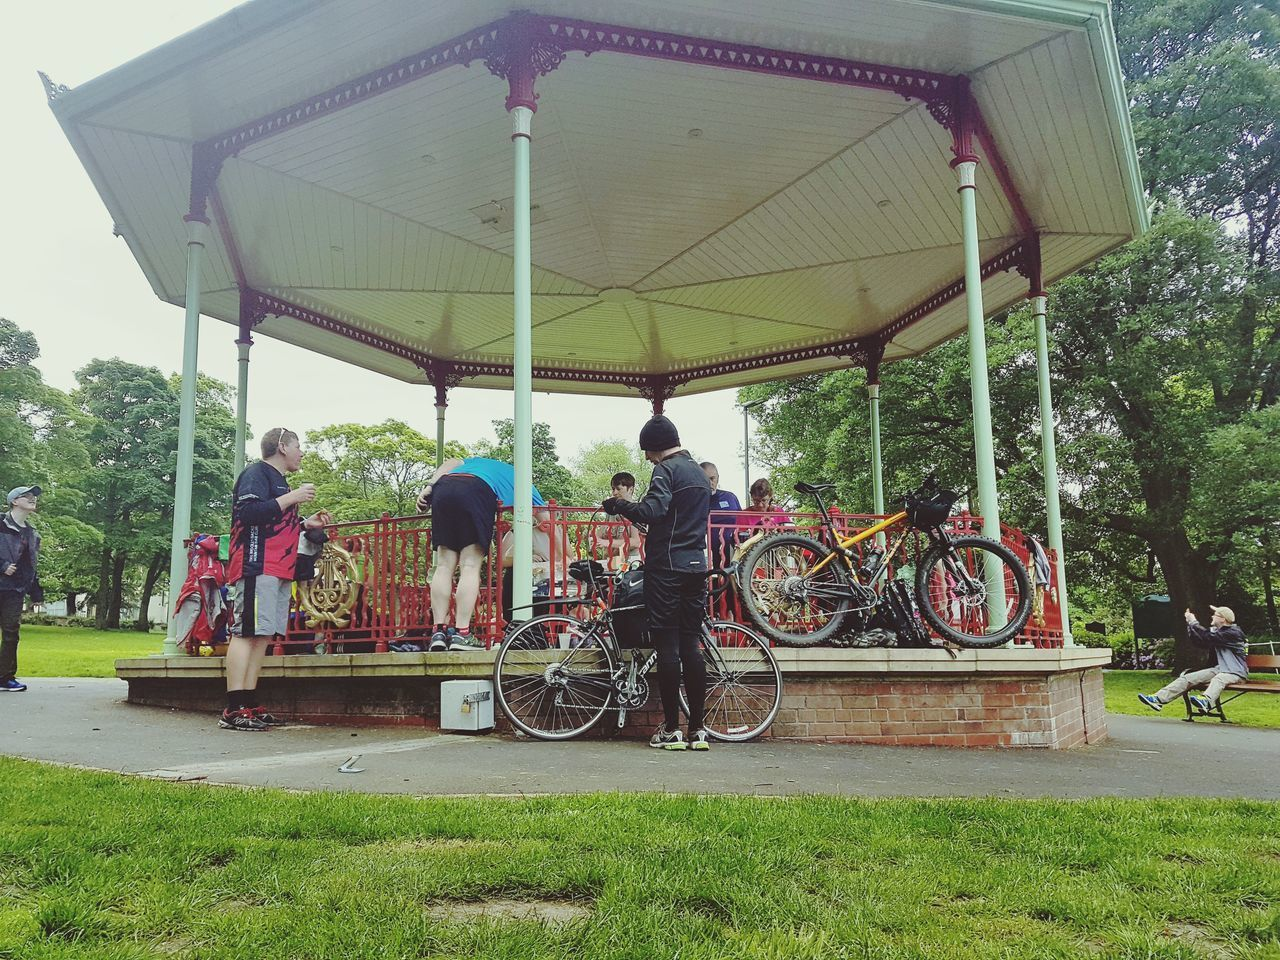 Park Run Uk Post Park Run Relaxation Bandstand People Outdoors Real People Lifestyles Men Capturing The Moment Bike Bikes Everyday Lives